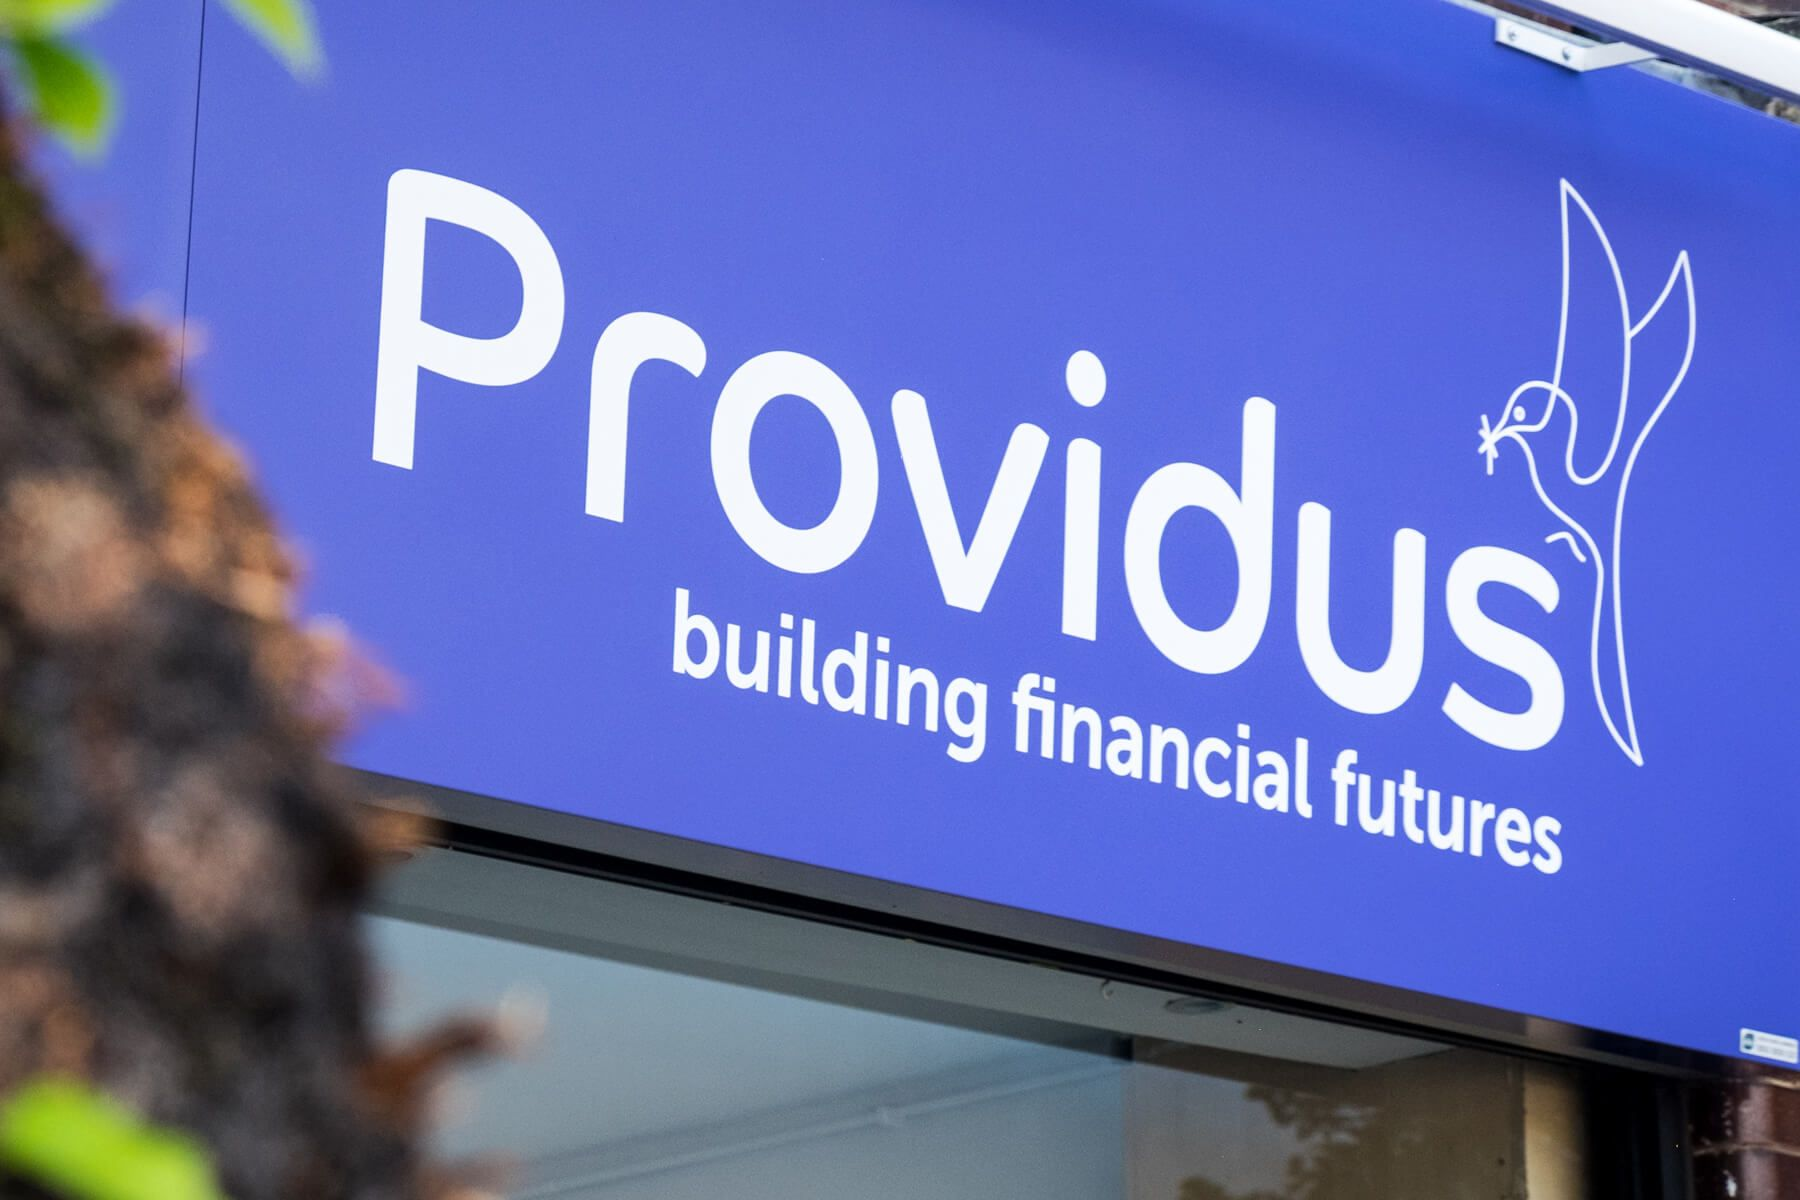 Providus Financial / Building futures through a brand aligned to financial assurance